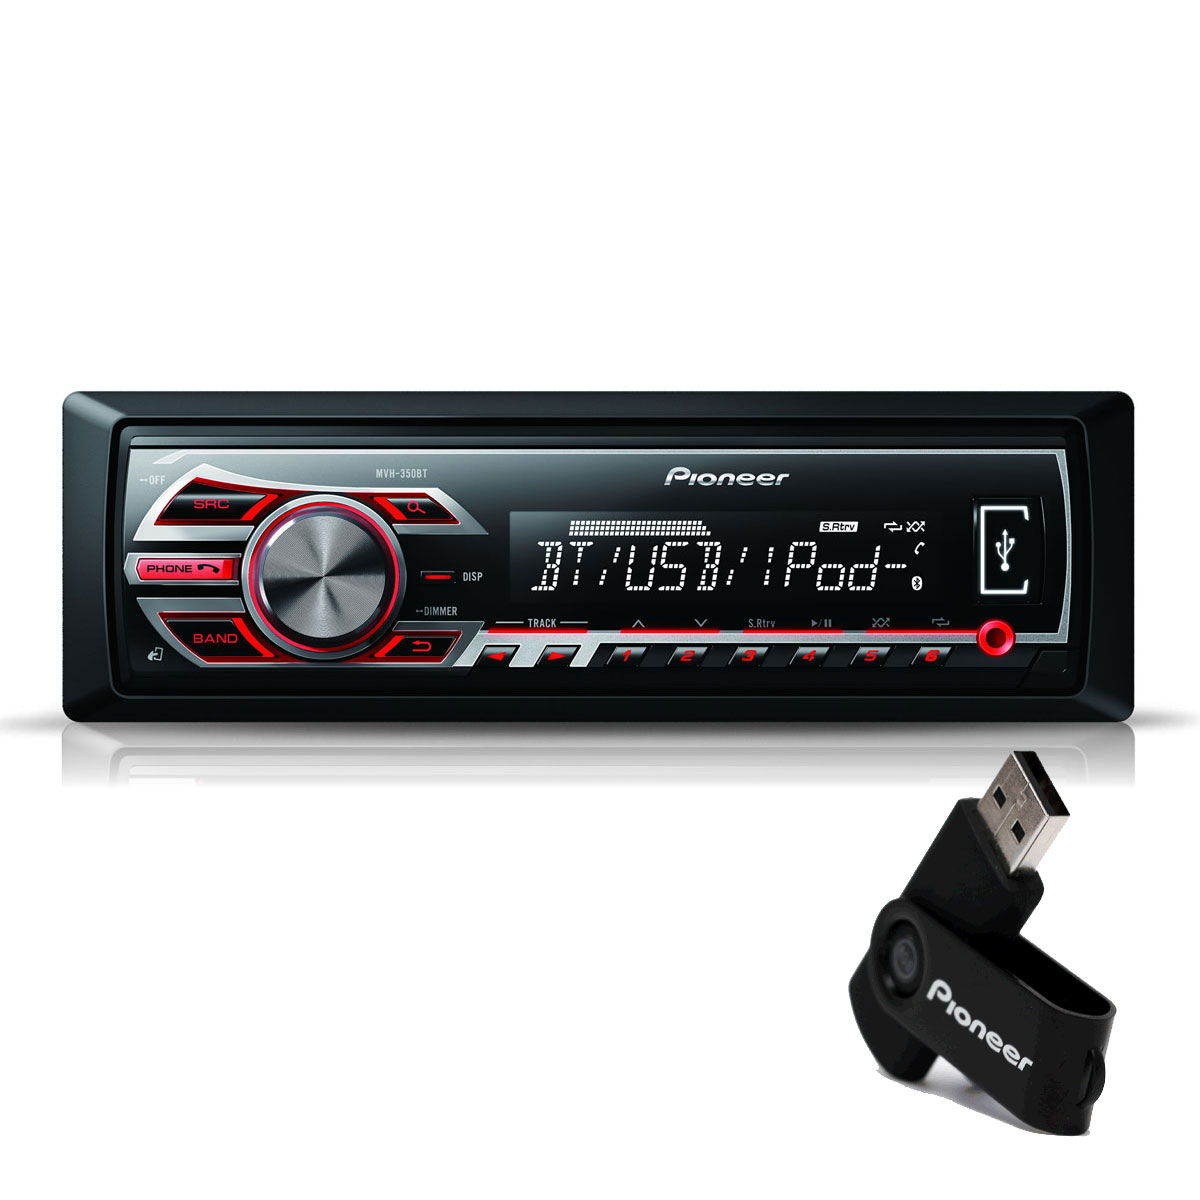 pioneer mvh 350bt cl usb 8 go autoradio pioneer sur ldlc. Black Bedroom Furniture Sets. Home Design Ideas